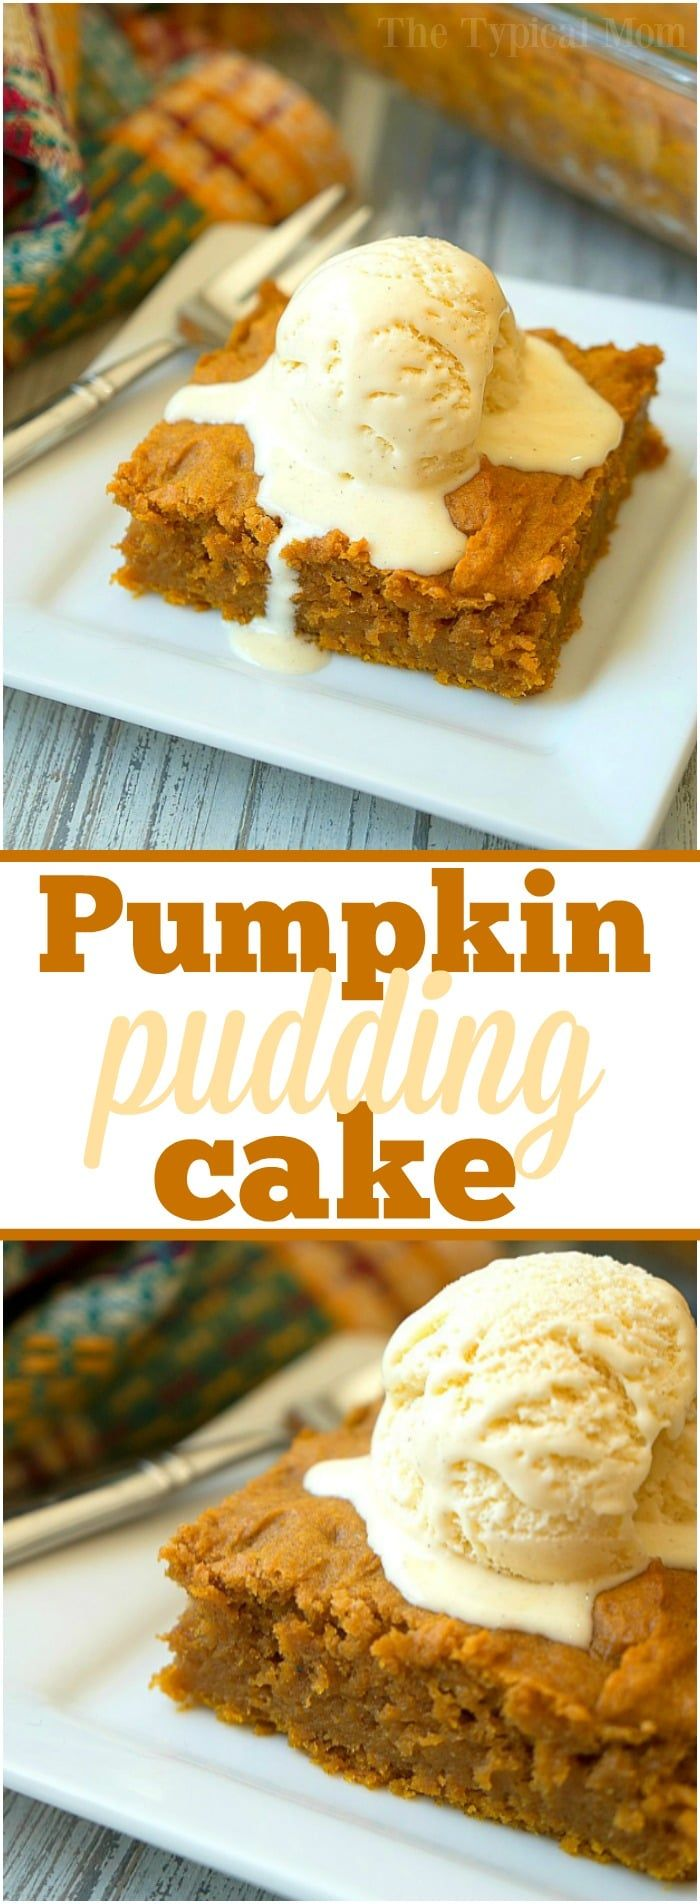 This easy pumpkin pudding cake recipe tastes like pumpkin pie but way better! Just 6 ingredients to dump in and bake to moist perfection. Best Fall dessert!